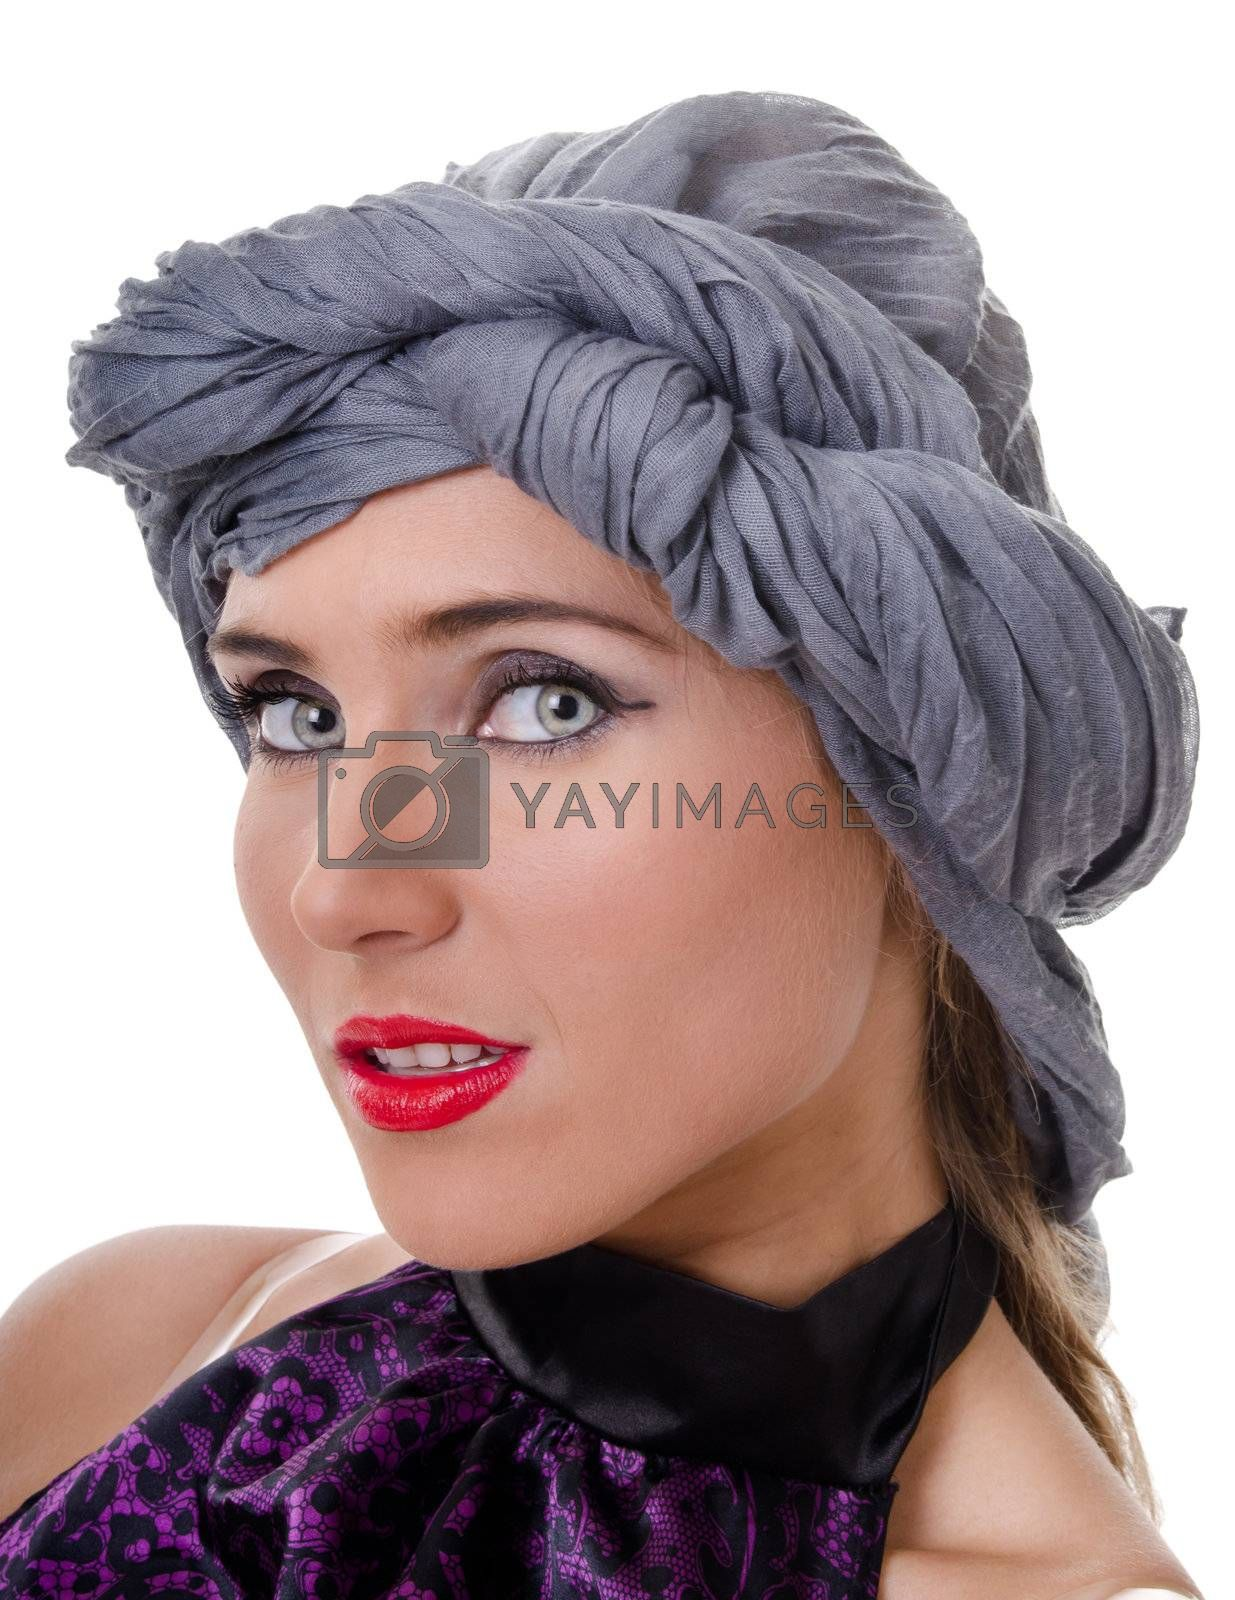 Portrait of glamorous woman in a turban